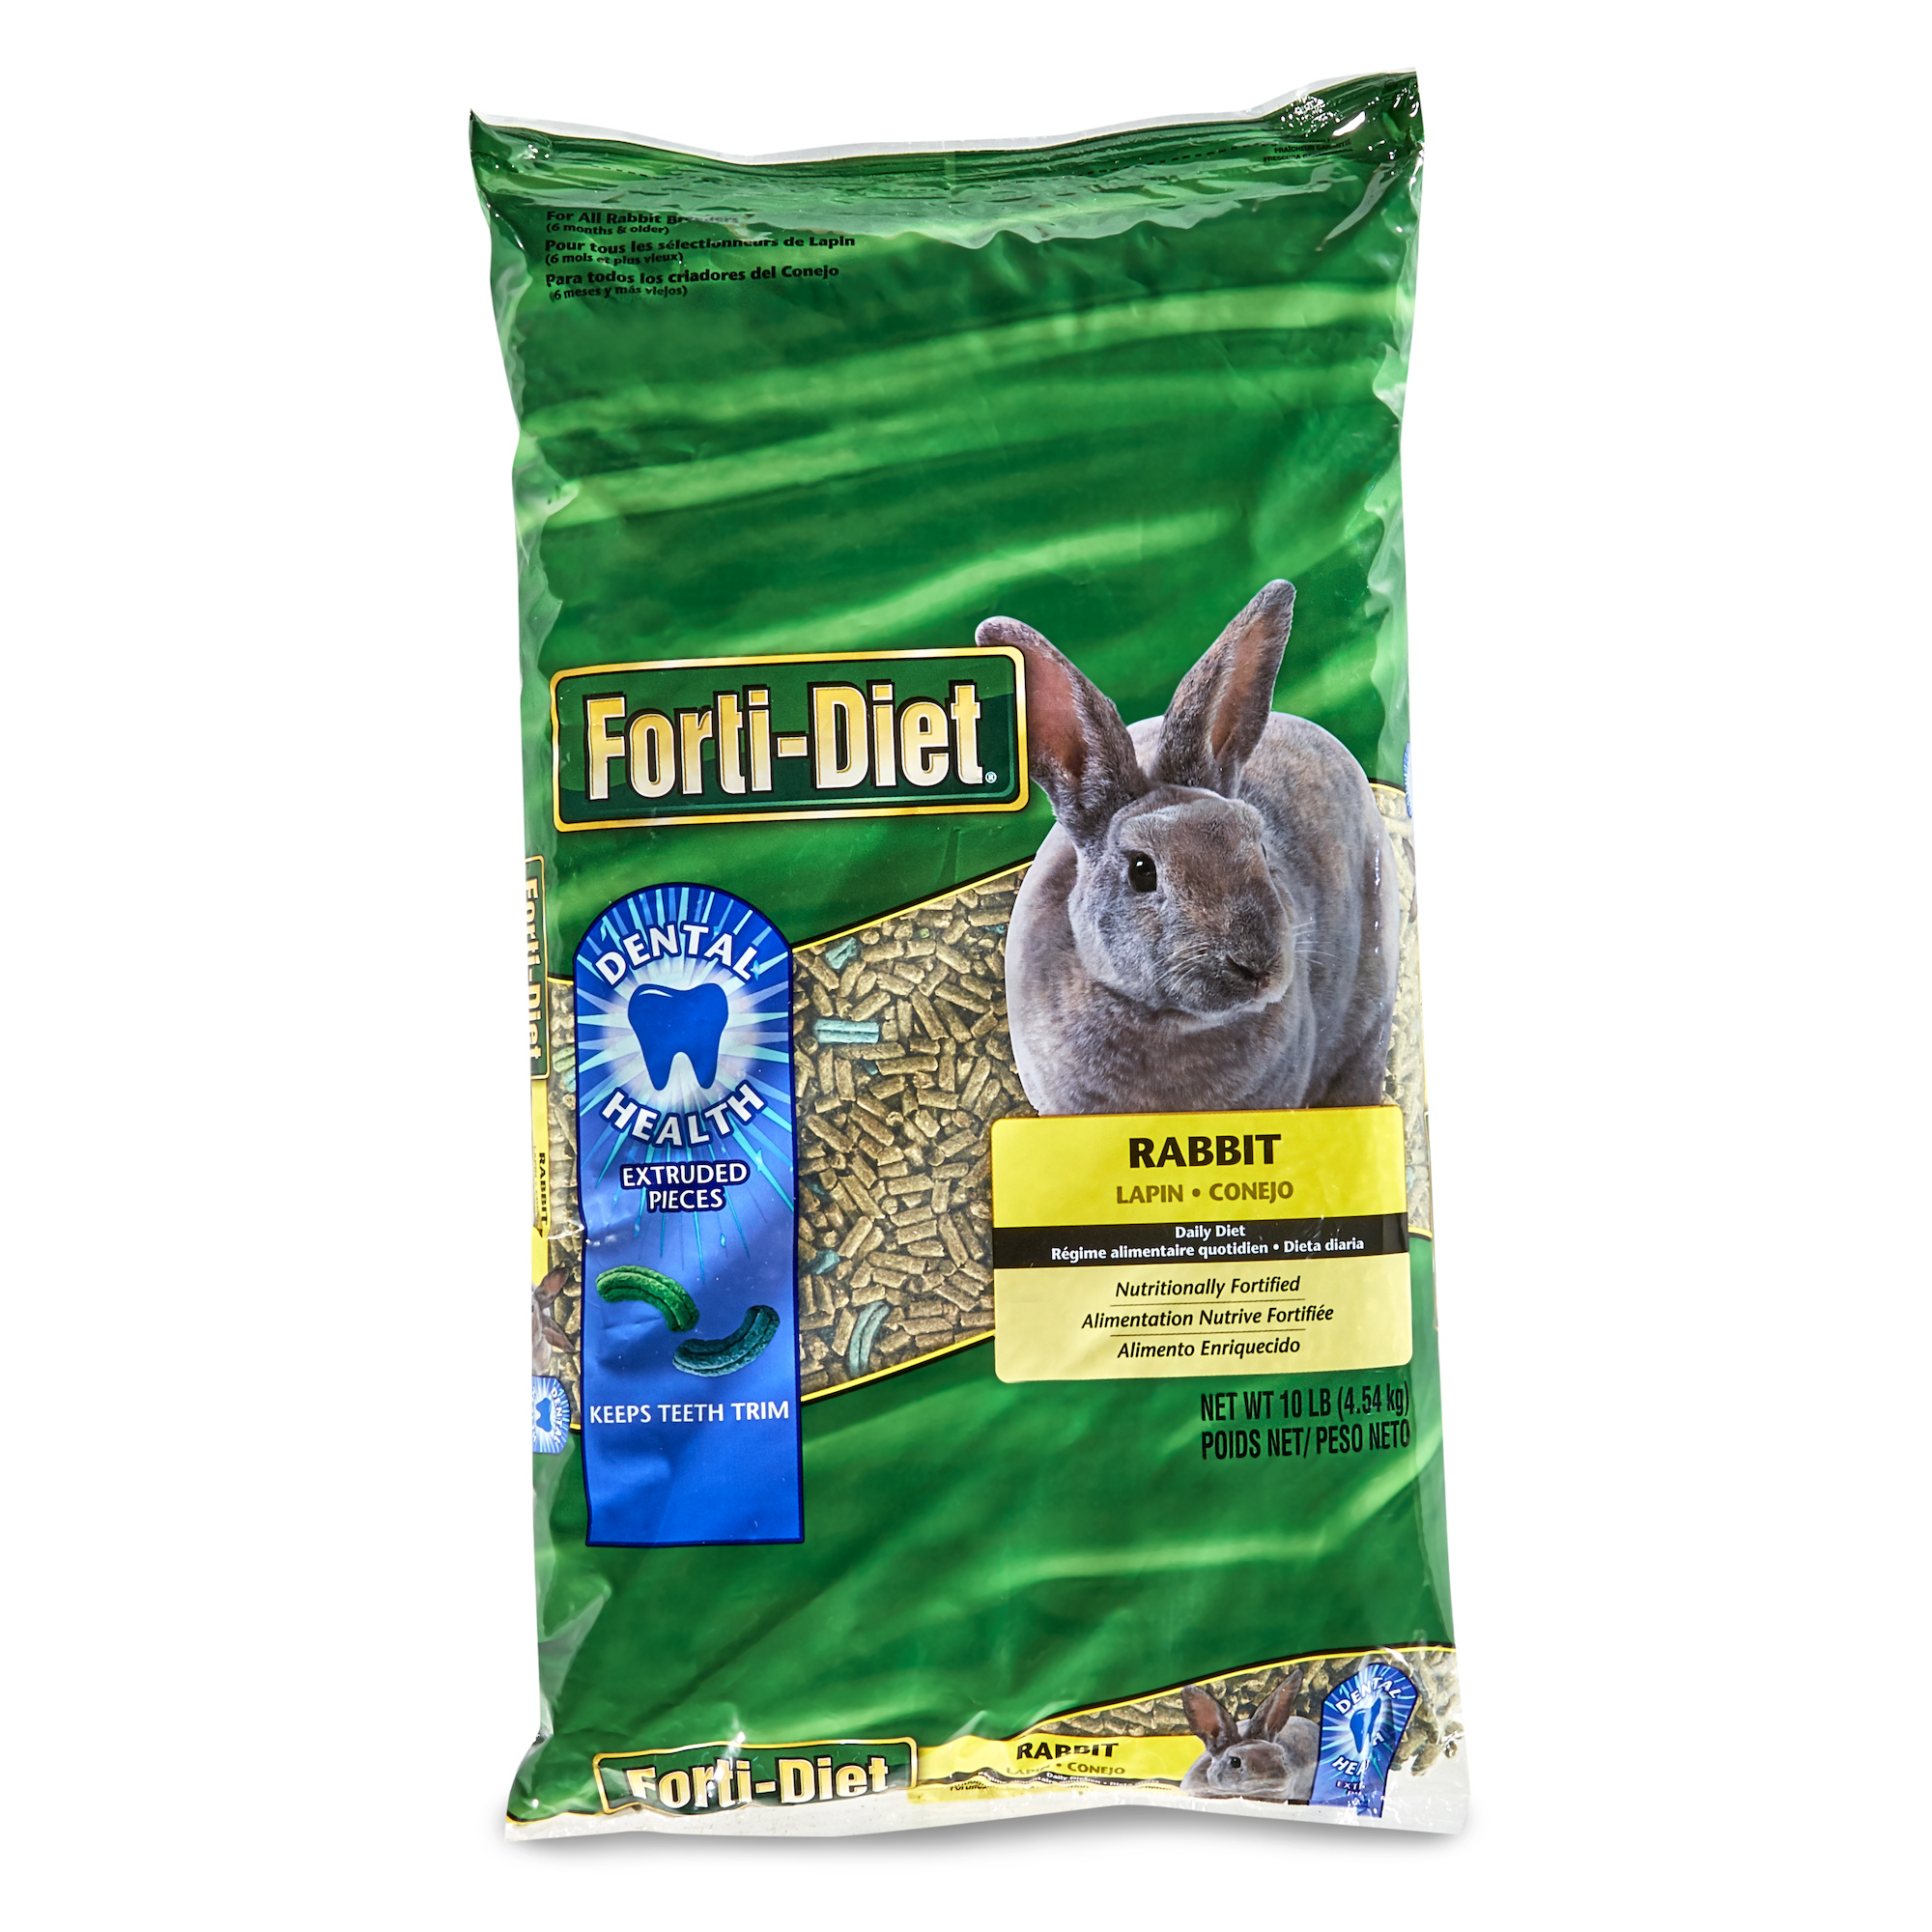 Forti-Diet Pet Rabbit Food, 10 lbs.